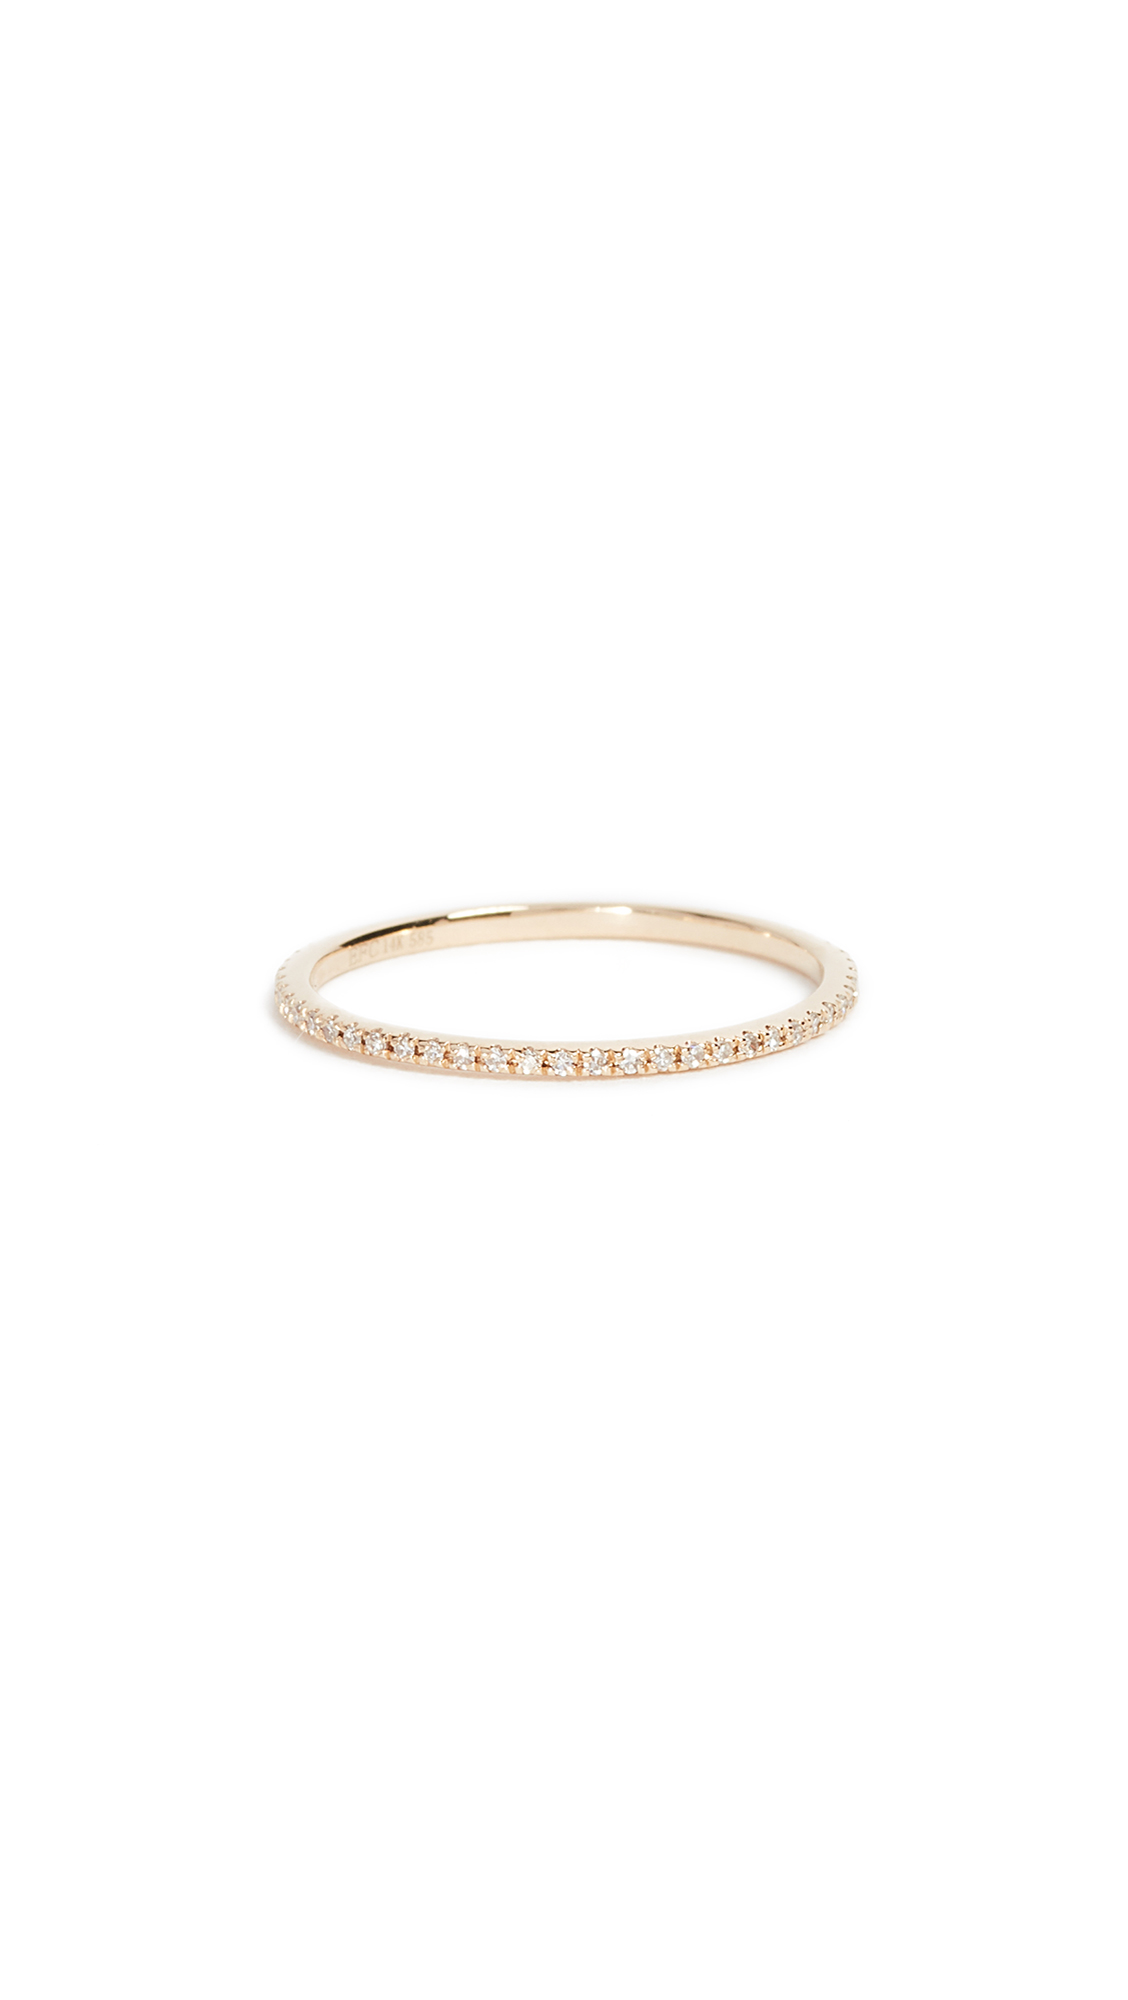 EF Collection 14k Gold Diamond Eternity Stack Ring - Yellow Gold/Clear